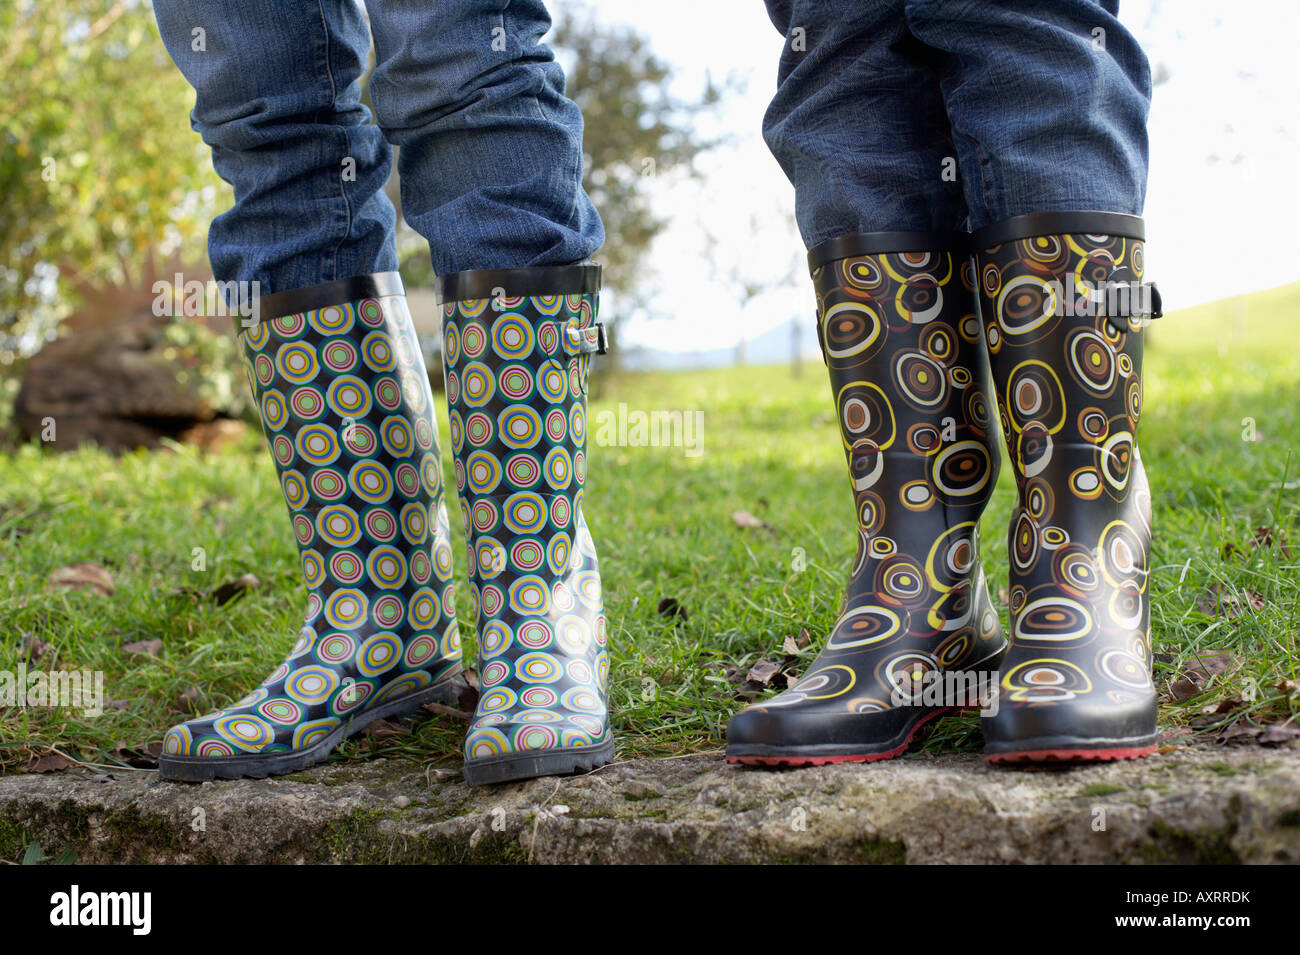 Two people in rubber boots standing on a wall, selective focus - Stock Image